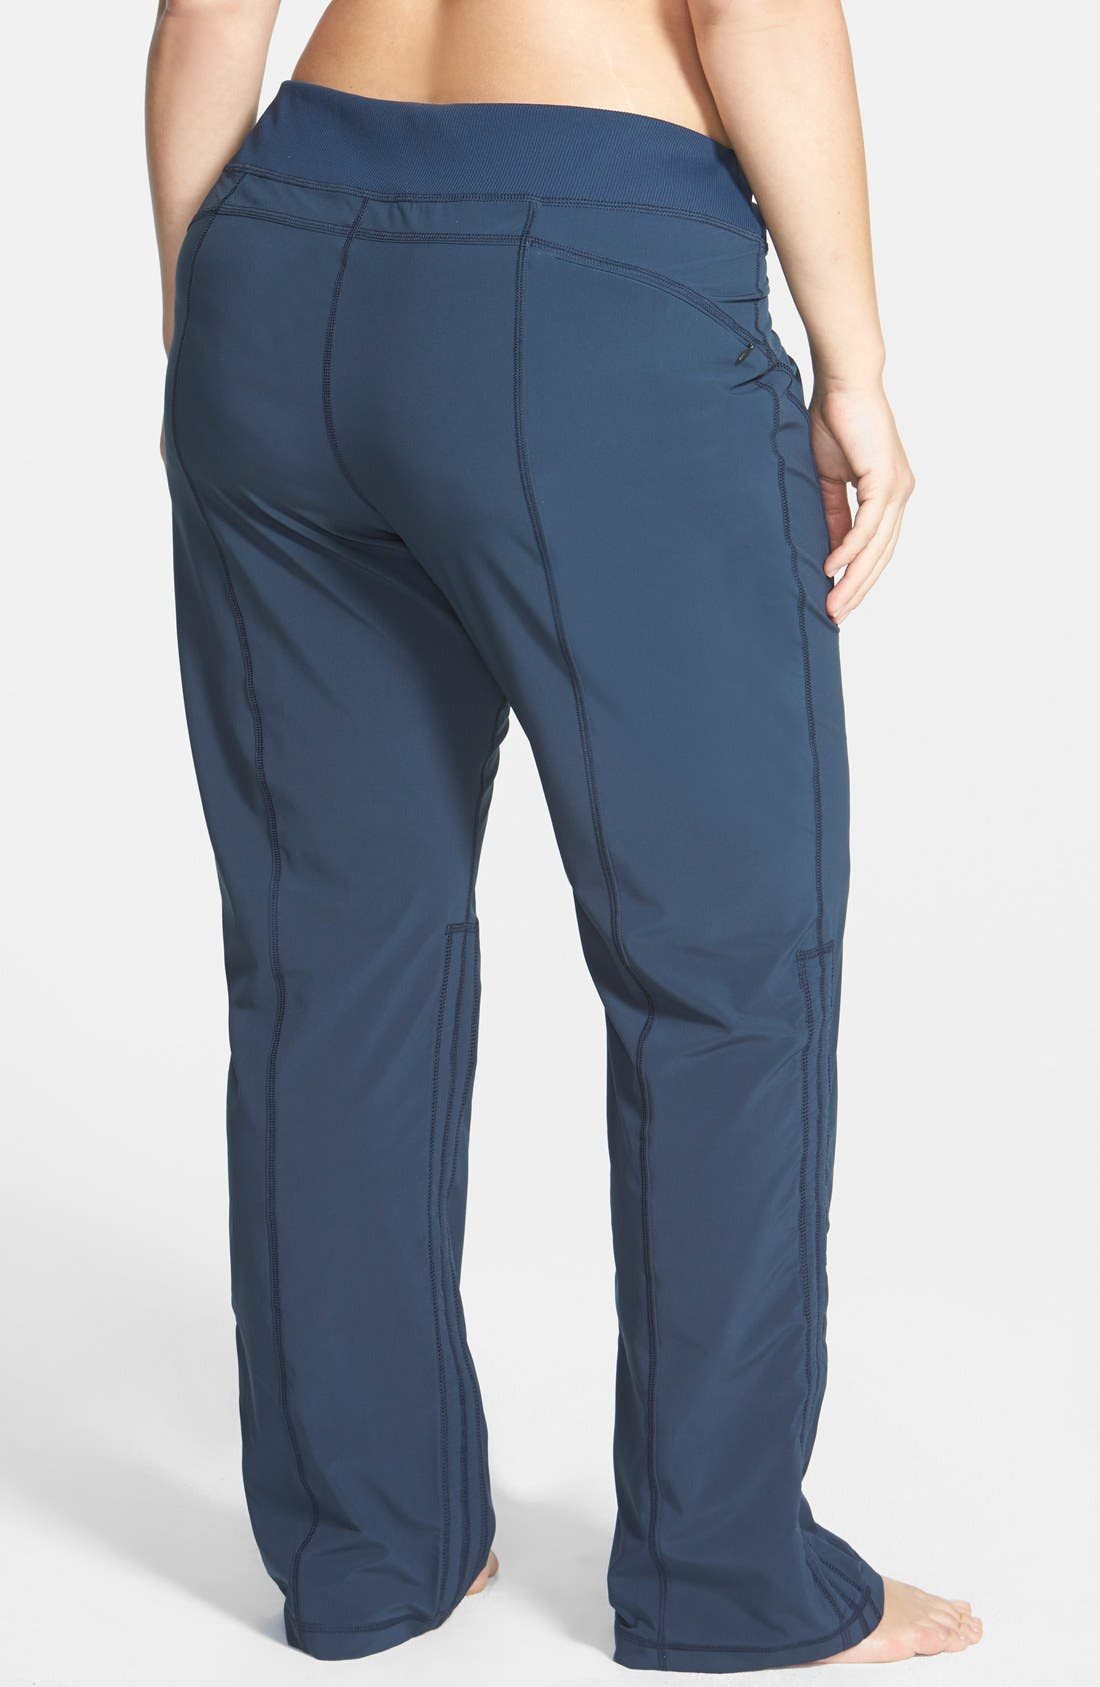 Alternate Image 2  - Zella 'Work It' Pants (Plus Size)